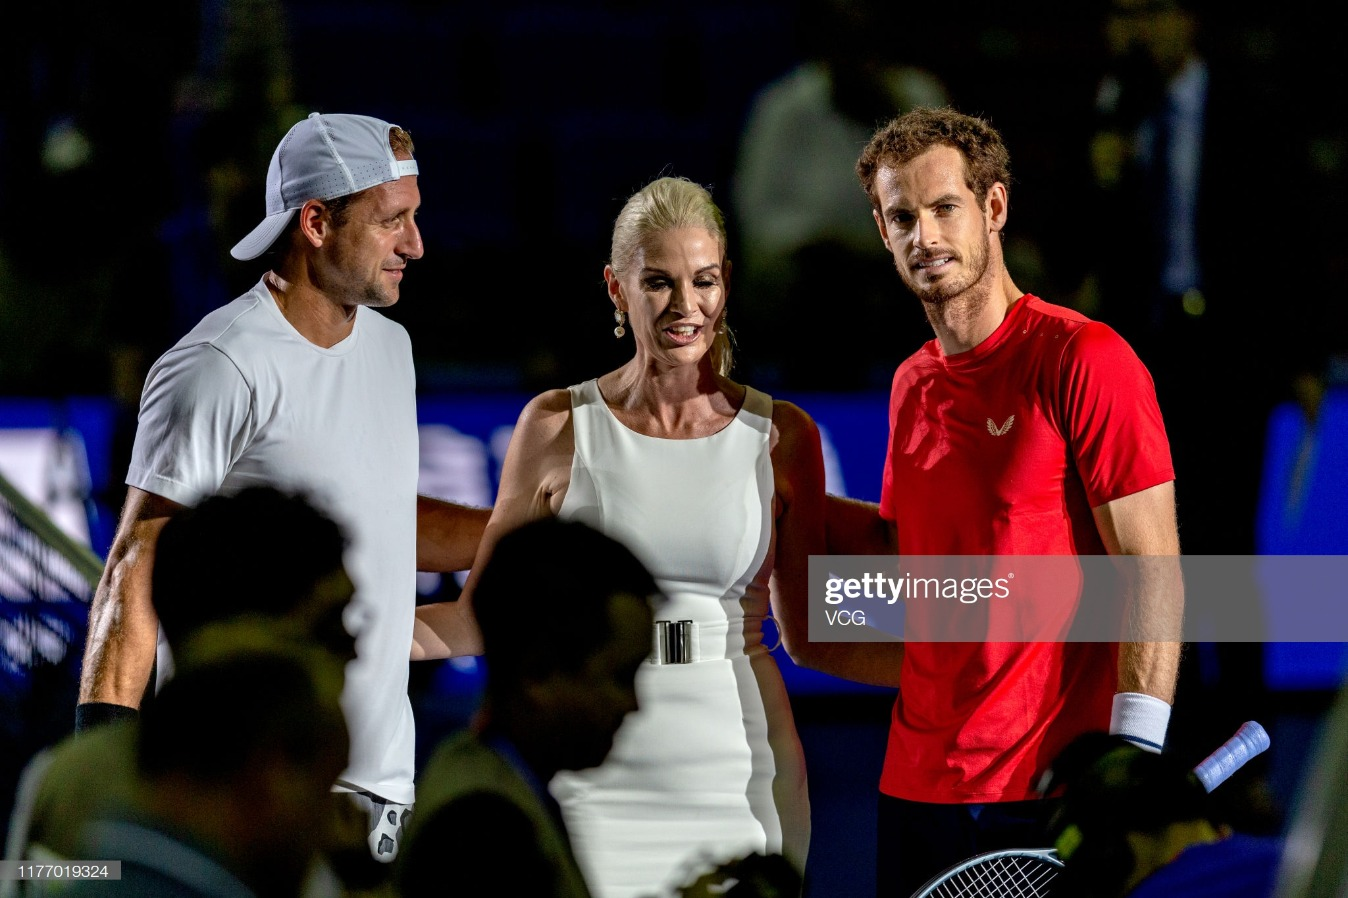 2019 ATP World Tour 250 Zhuhai Championships - Day 2 : News Photo